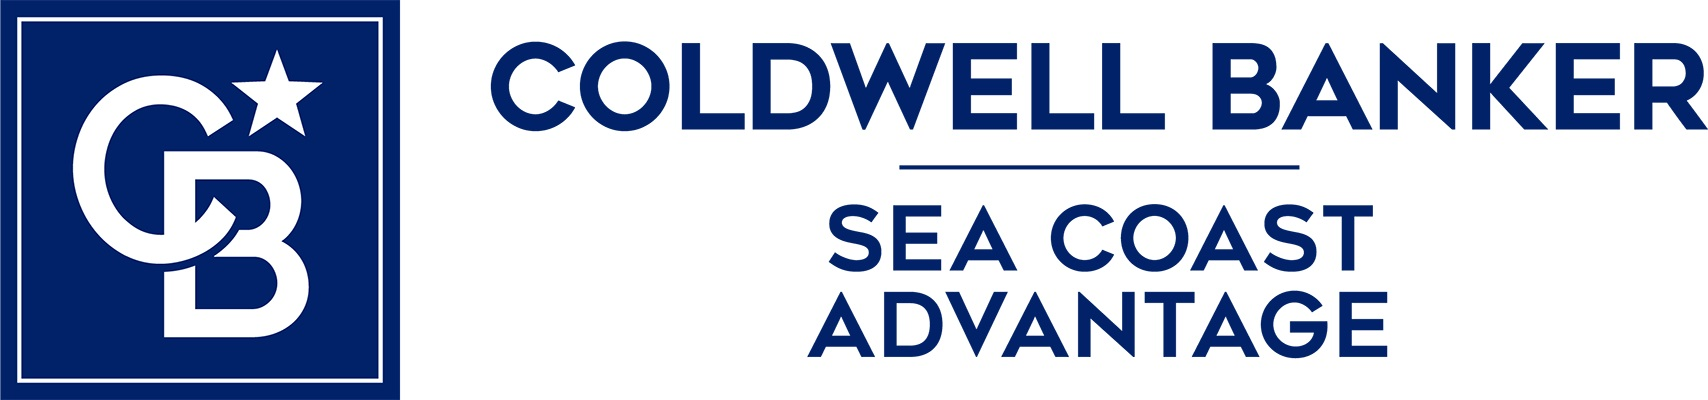 Kristen Downing - Coldwell Banker Sea Coast Advantage Realty